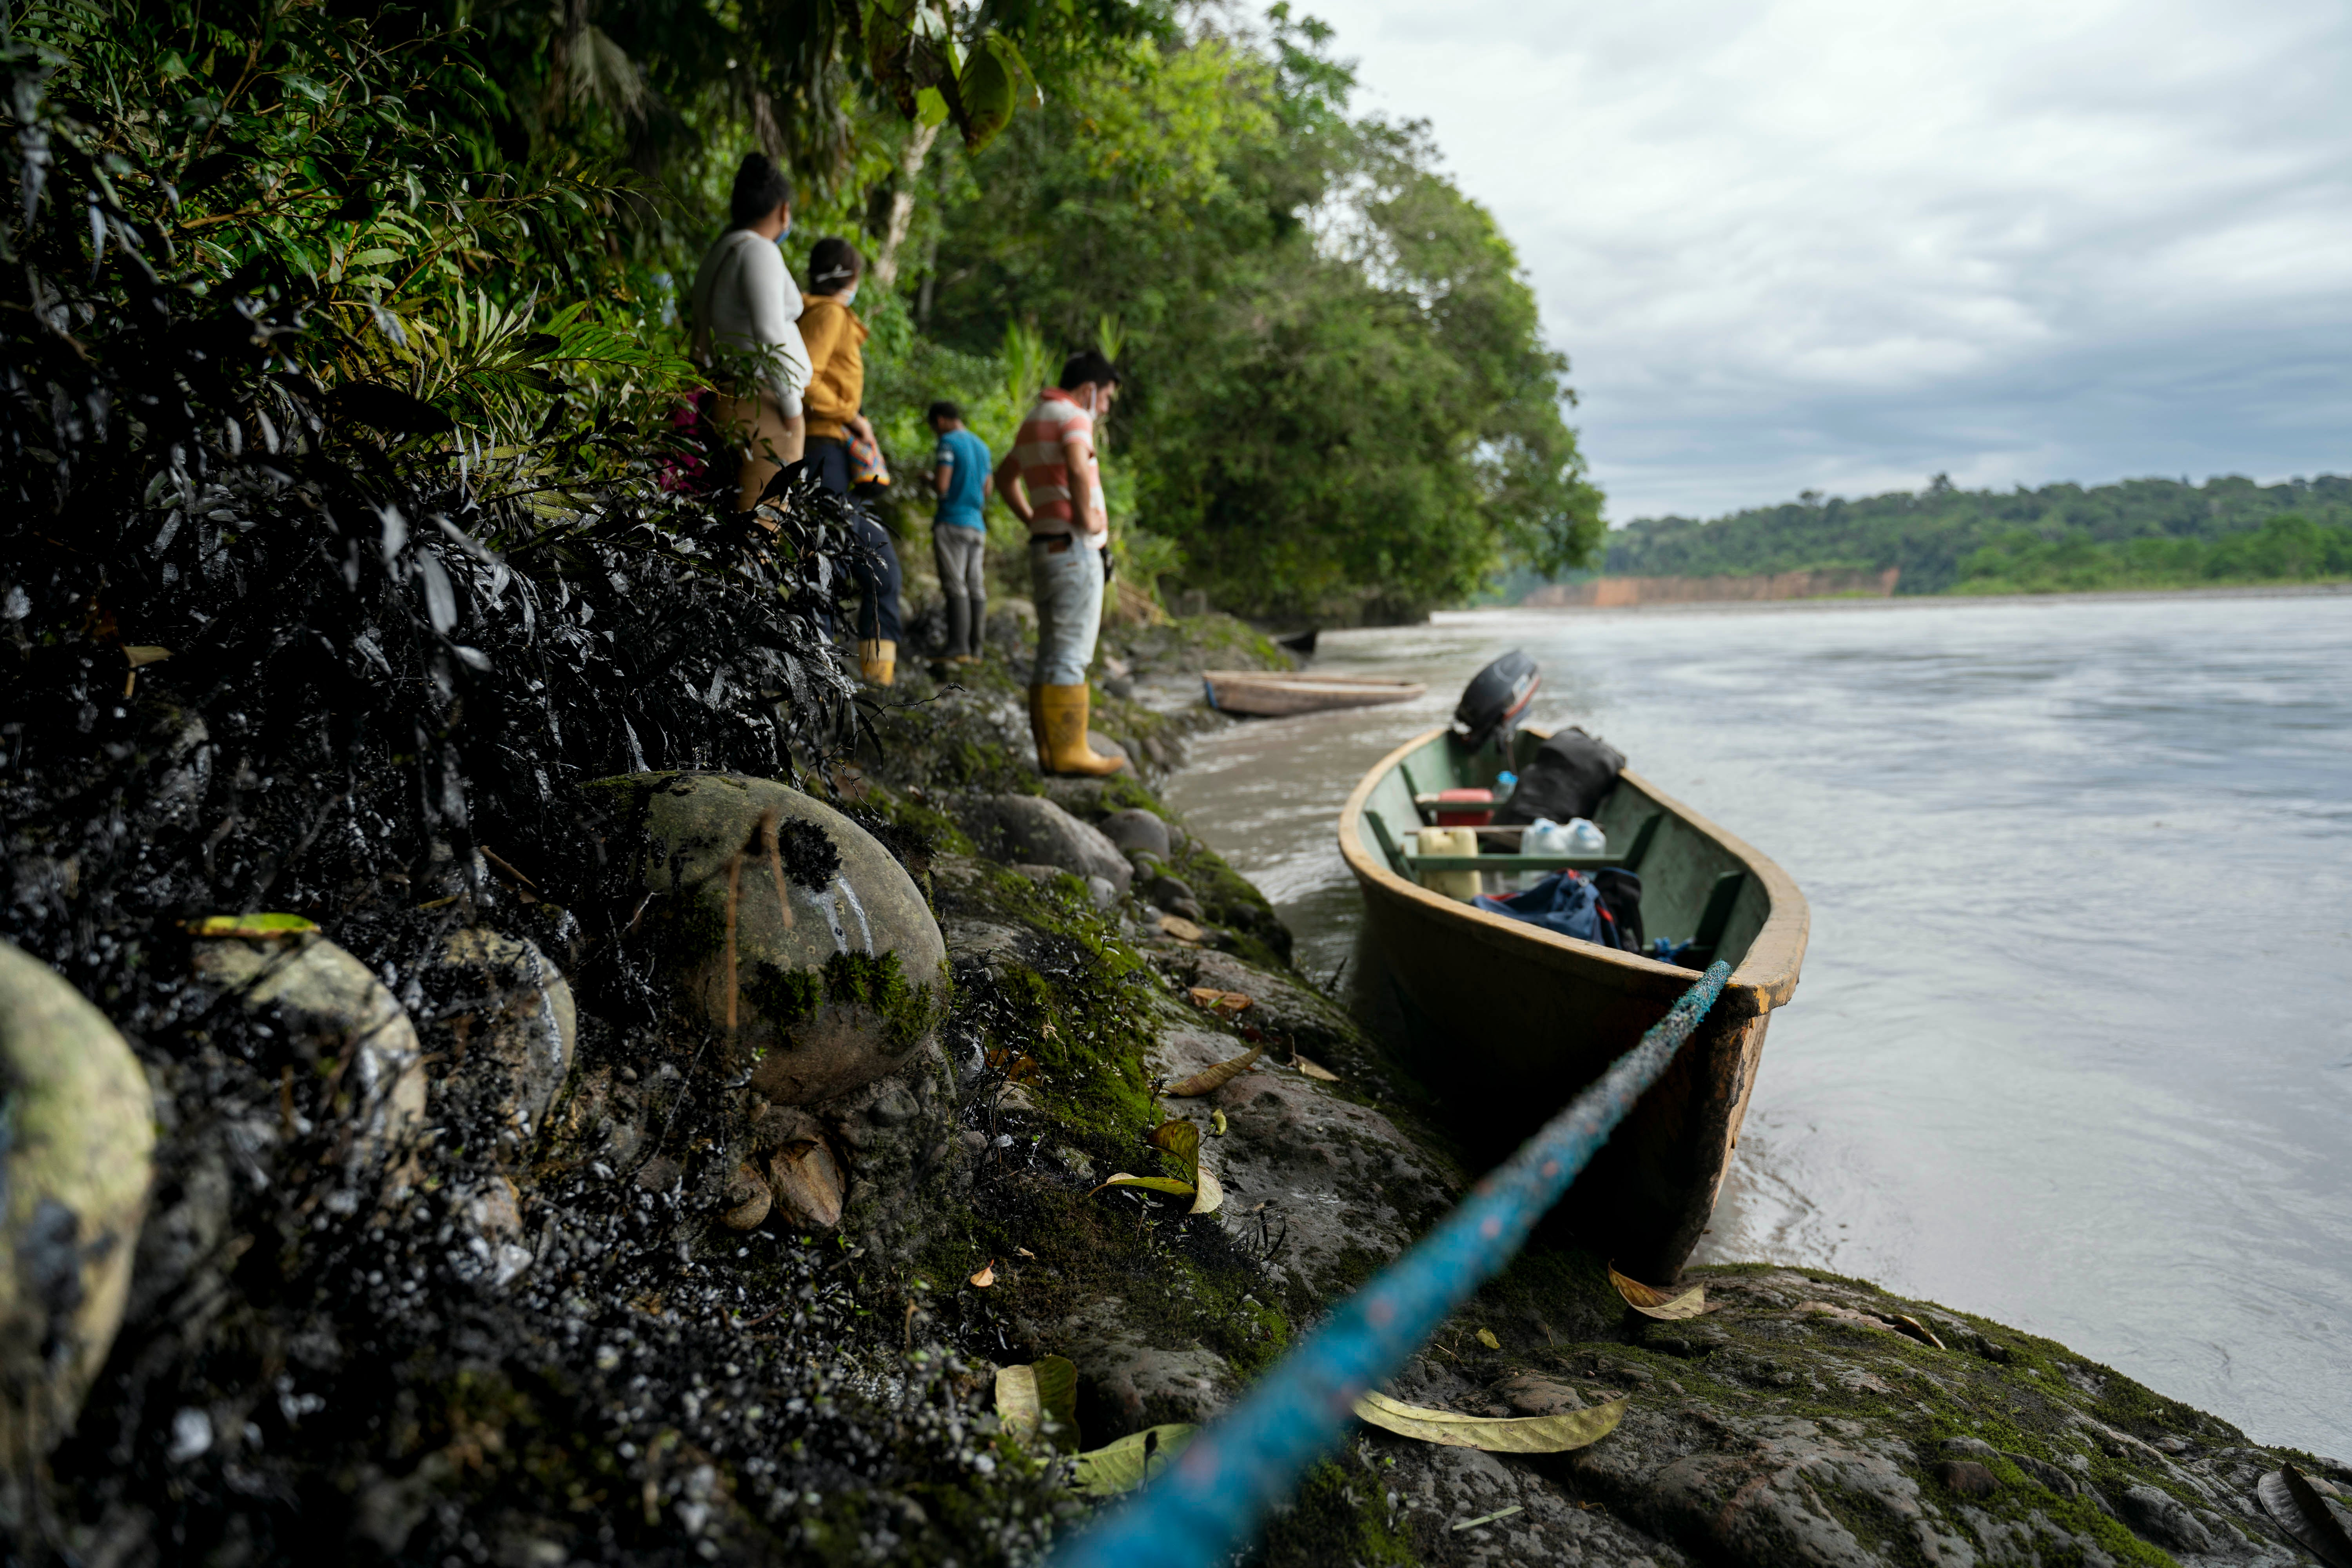 An Oil Spill And The Coronavirus Are Creating A Crisis In Ecuador's Amazon